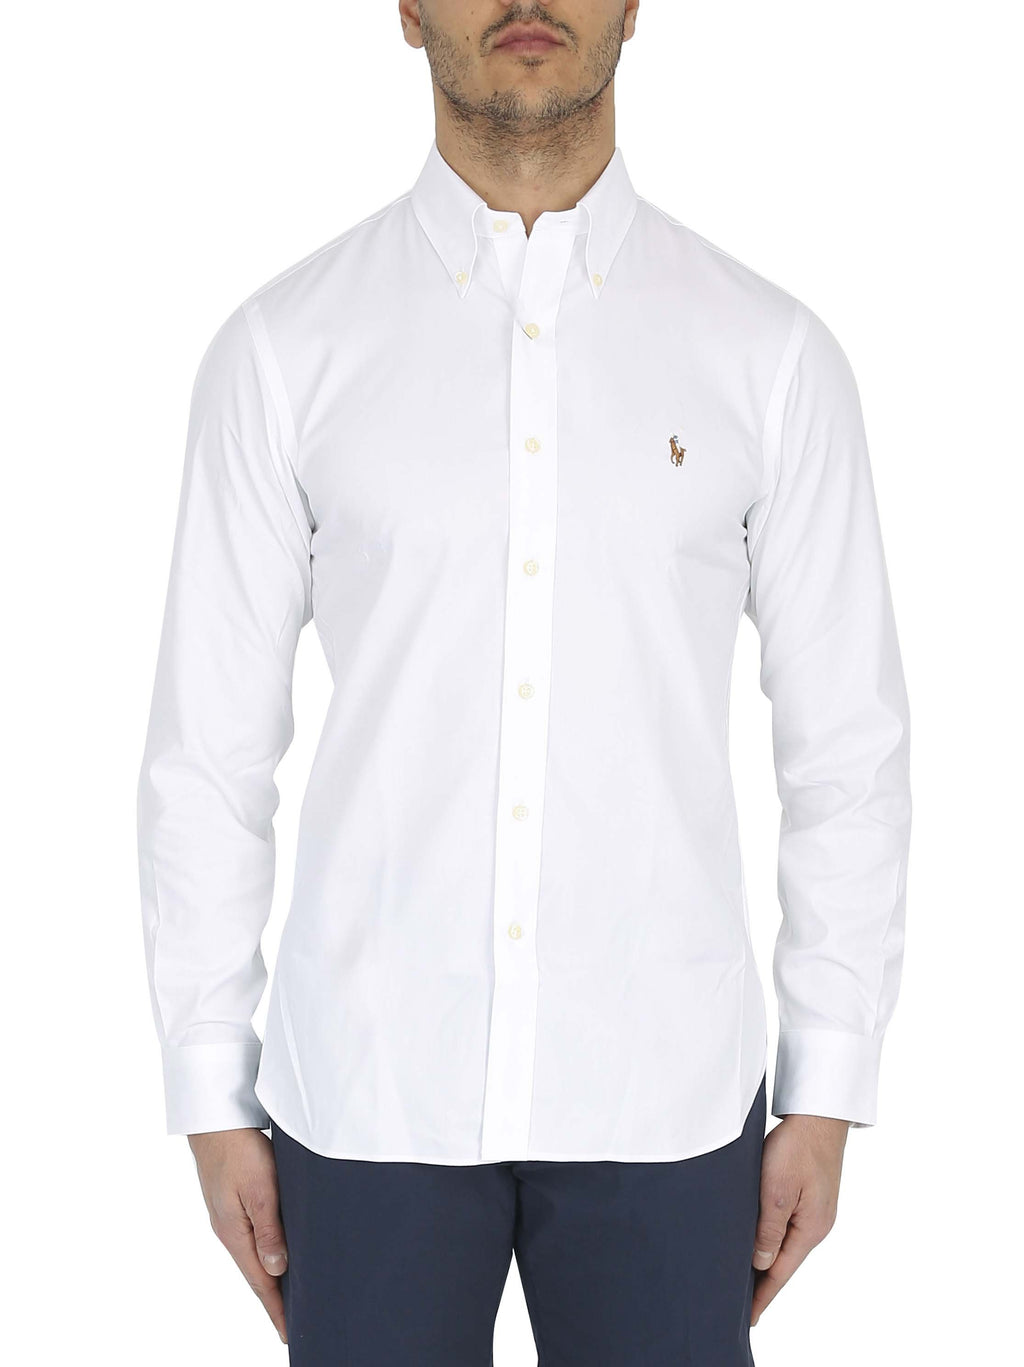 RALPH LAUREN Custom fit button down shirt with embroidered logo